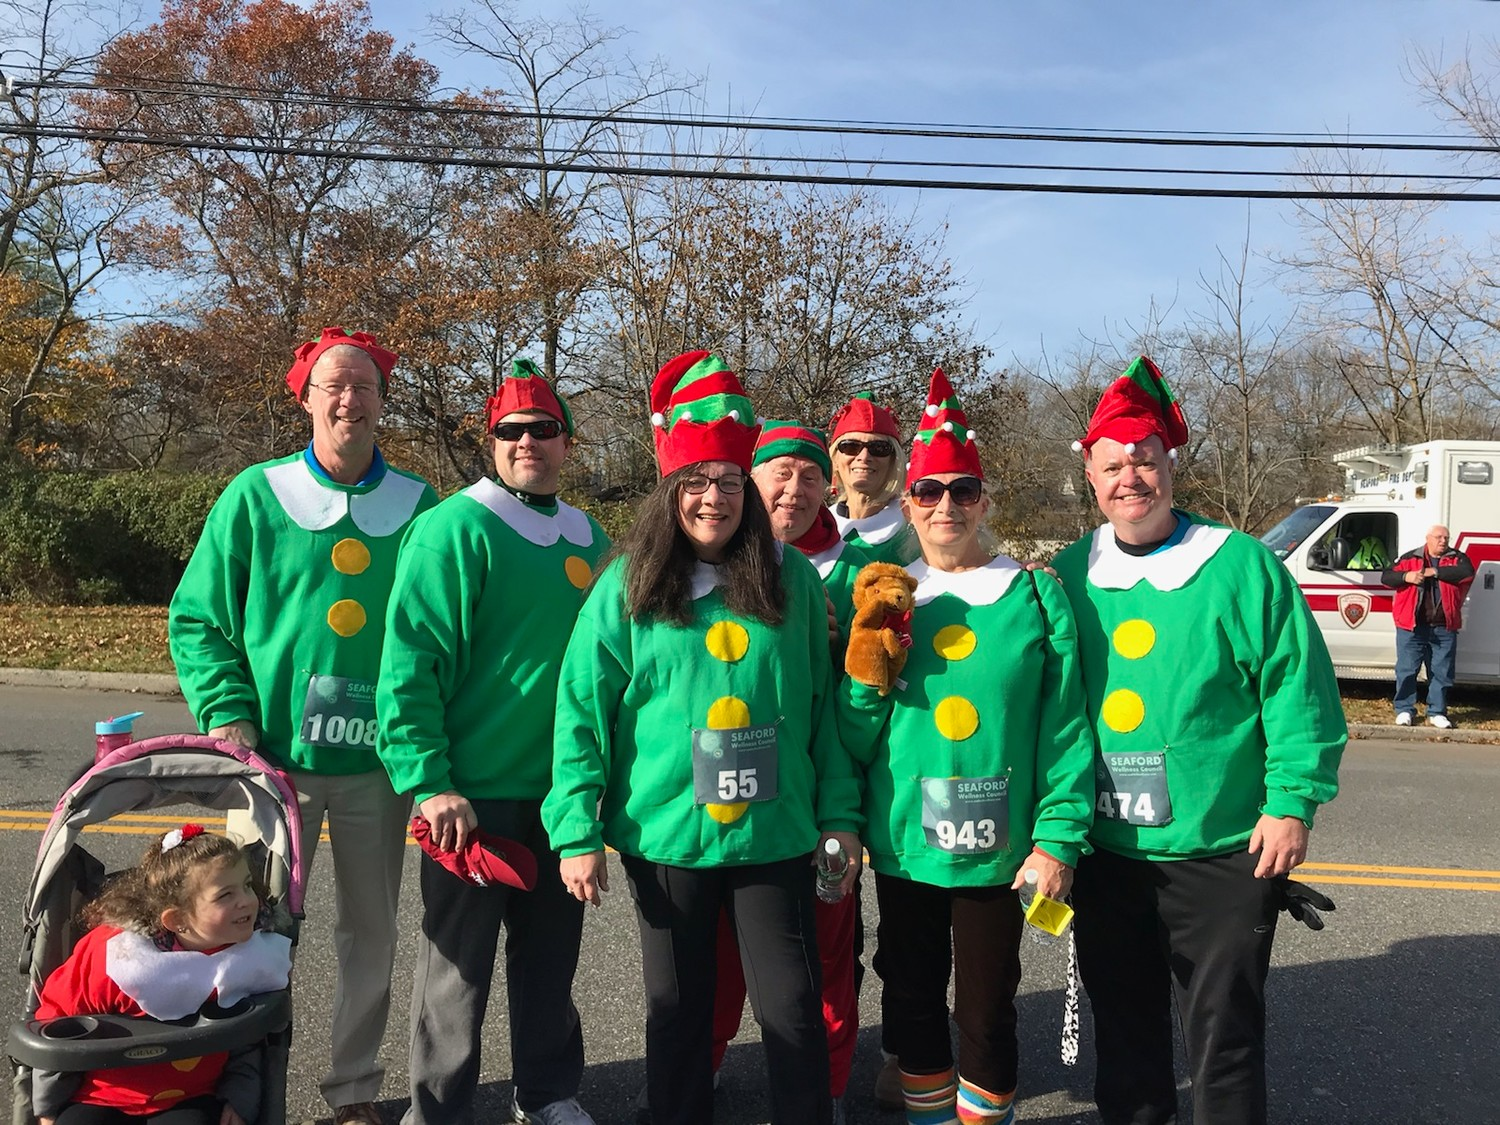 Members of the Seaford Lions Club dressed in festive costumes for the event. From left, George Brennan and his granddaughter Juliana, Mark Van Dusen, Virginia Boccio, Don Paulson, Nancy Kohler, Donna Kohler and Frank McKenna.